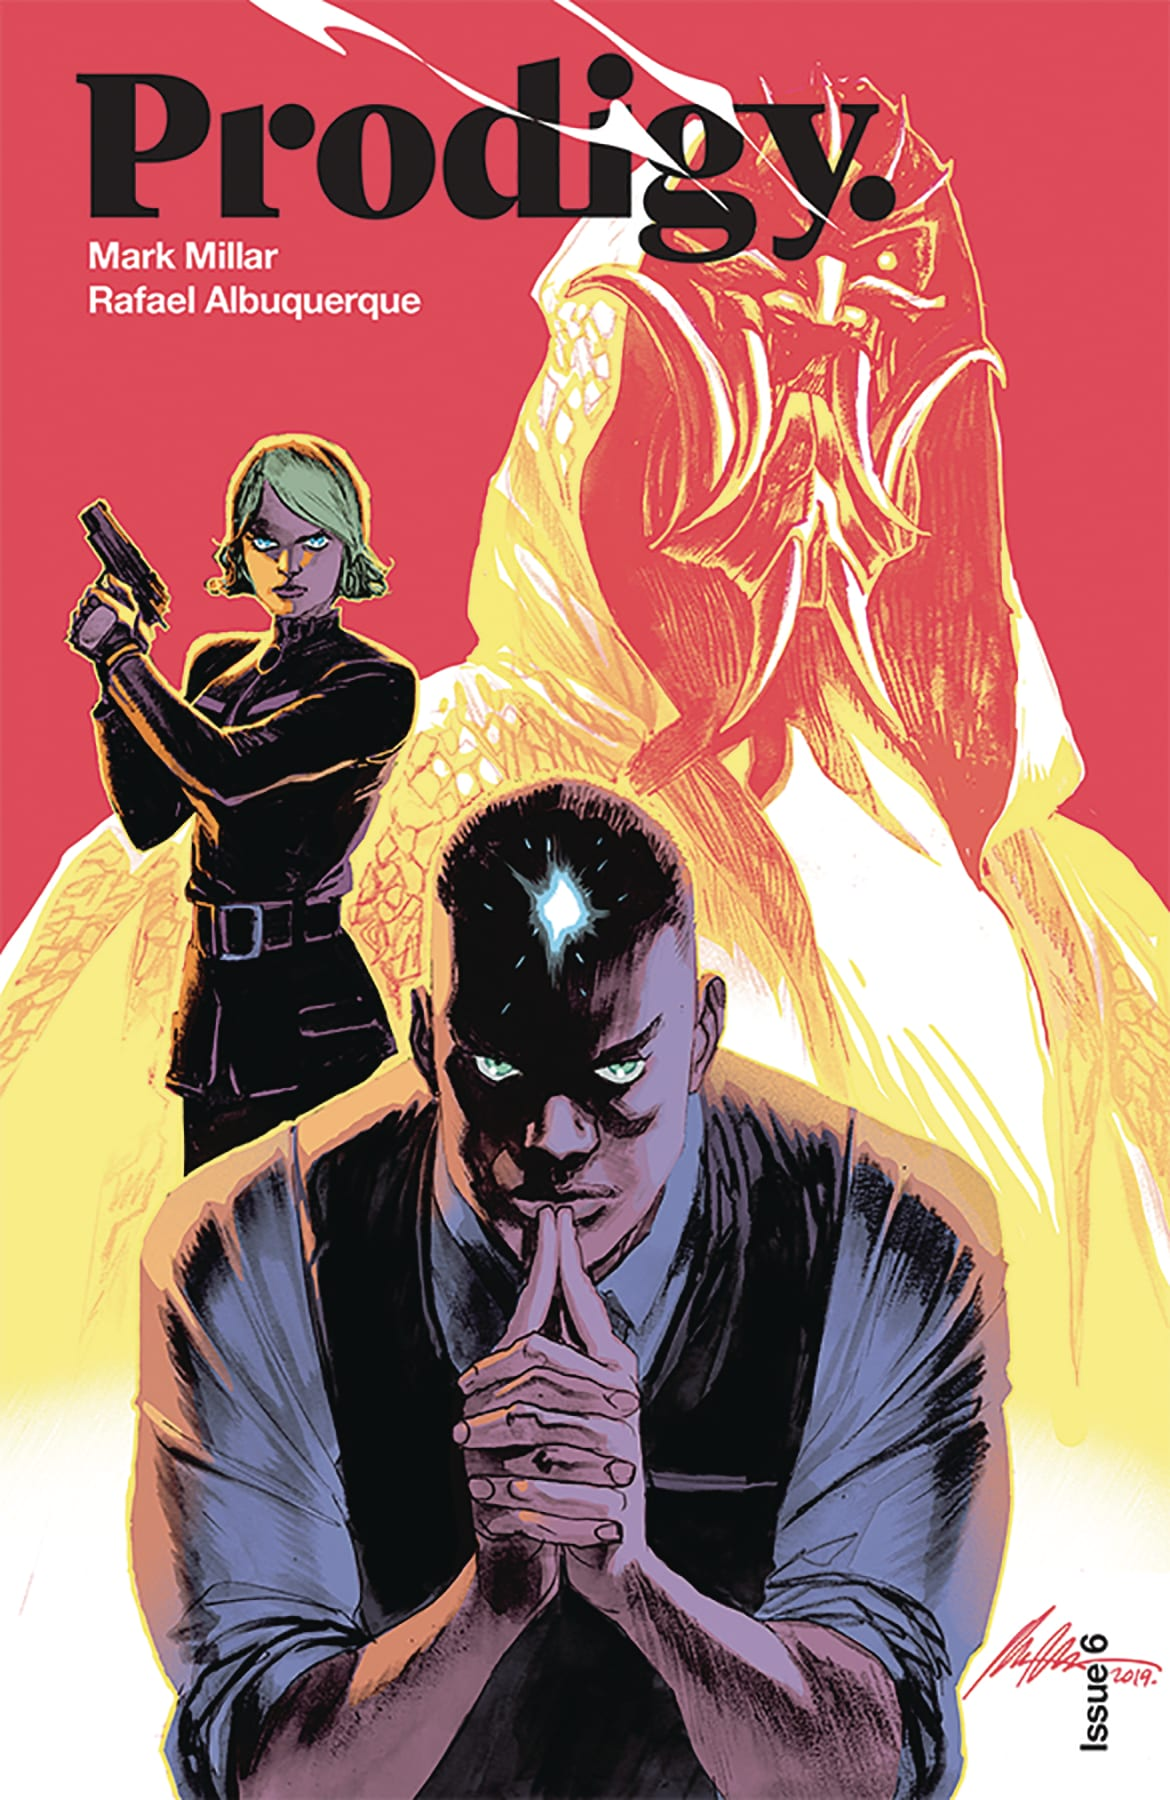 PRODIGY #6 Review: To The Man Who Can Do Everything 1